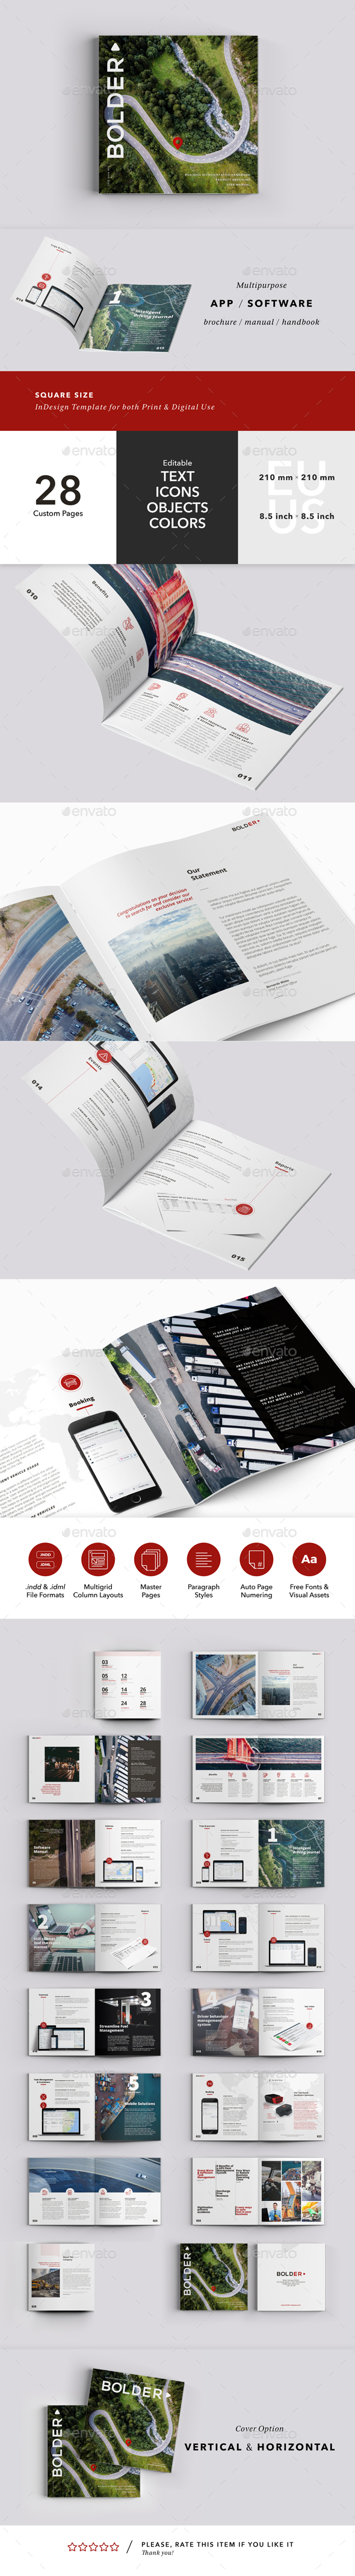 Multipurpose Brochure / Manual Perfect for App / Software - Brochures Print Templates